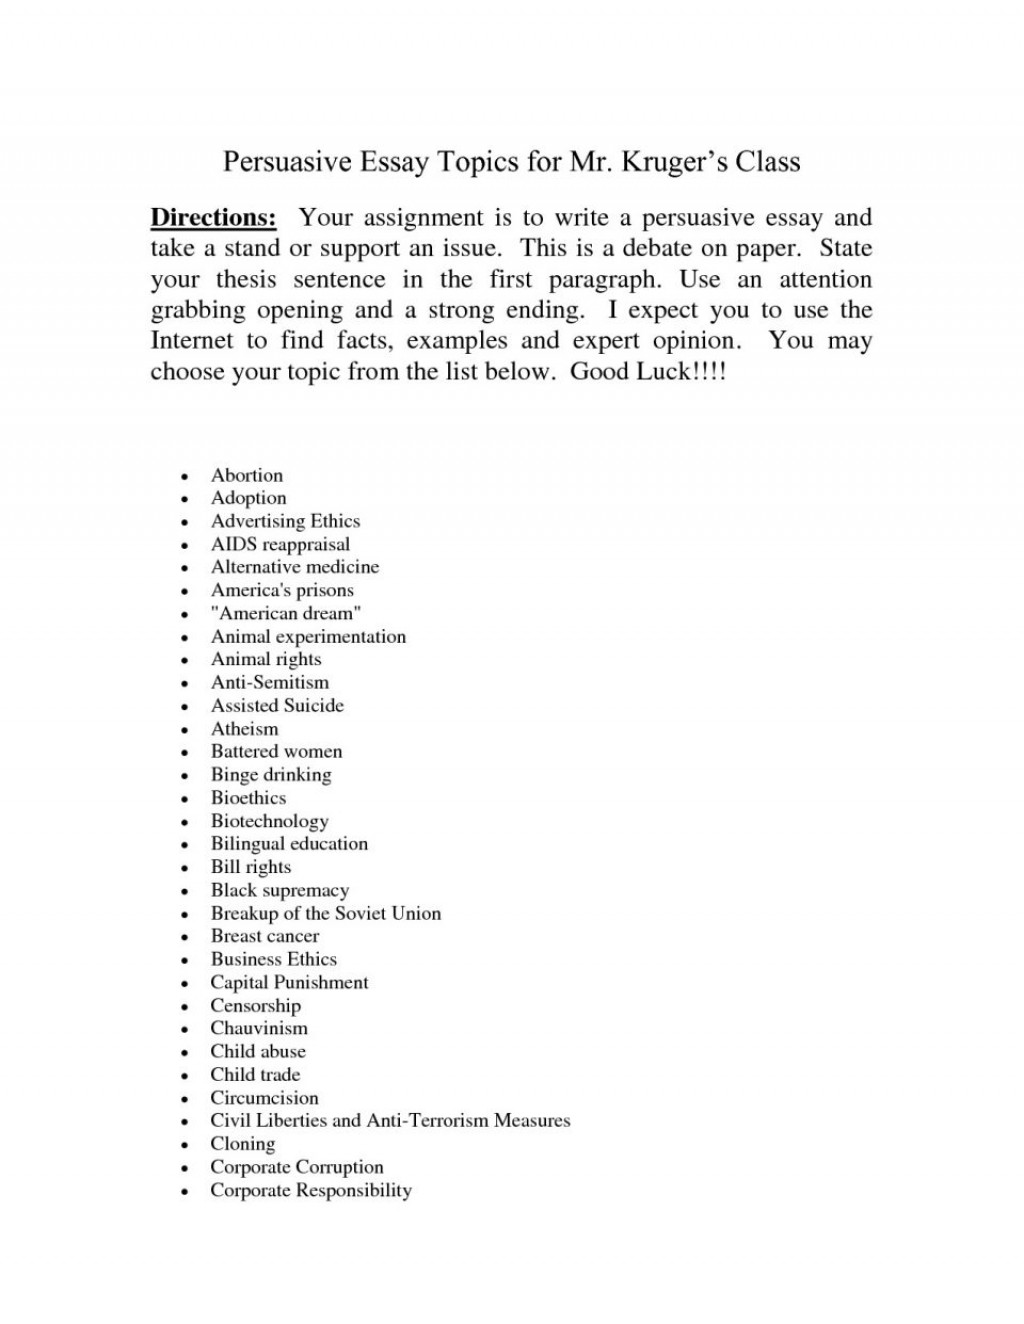 016 Topic For Essay Barca Fontanacountryinn Within Good Persuasive Narrative Topics To Write Abo Easy About Personal Descriptive Research Paper Informative Synthesis College 960x1242 Magnificent Great Papers World History Interesting Economic Large